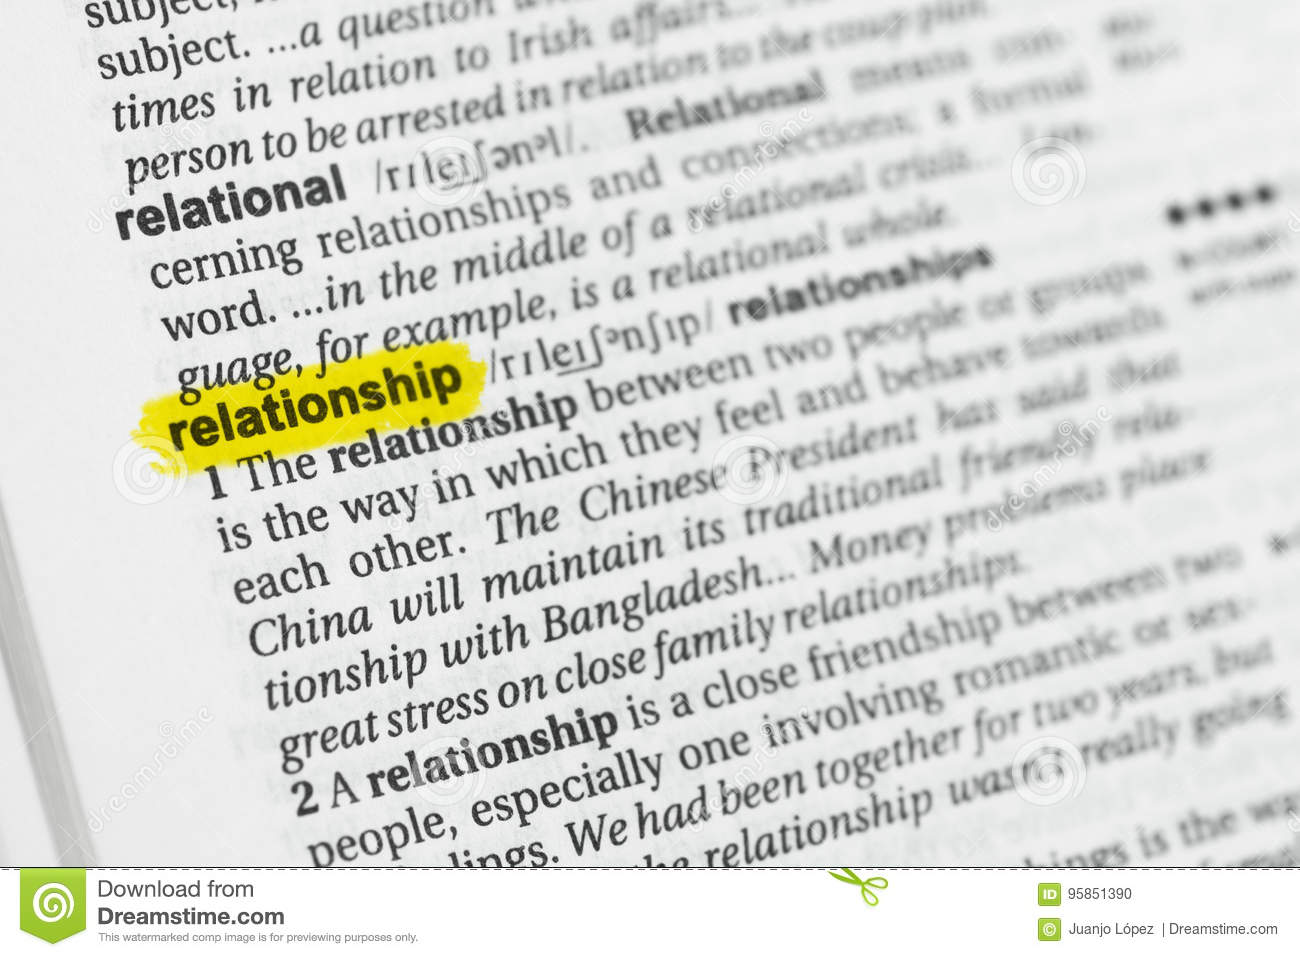 Relationship dictionary definition